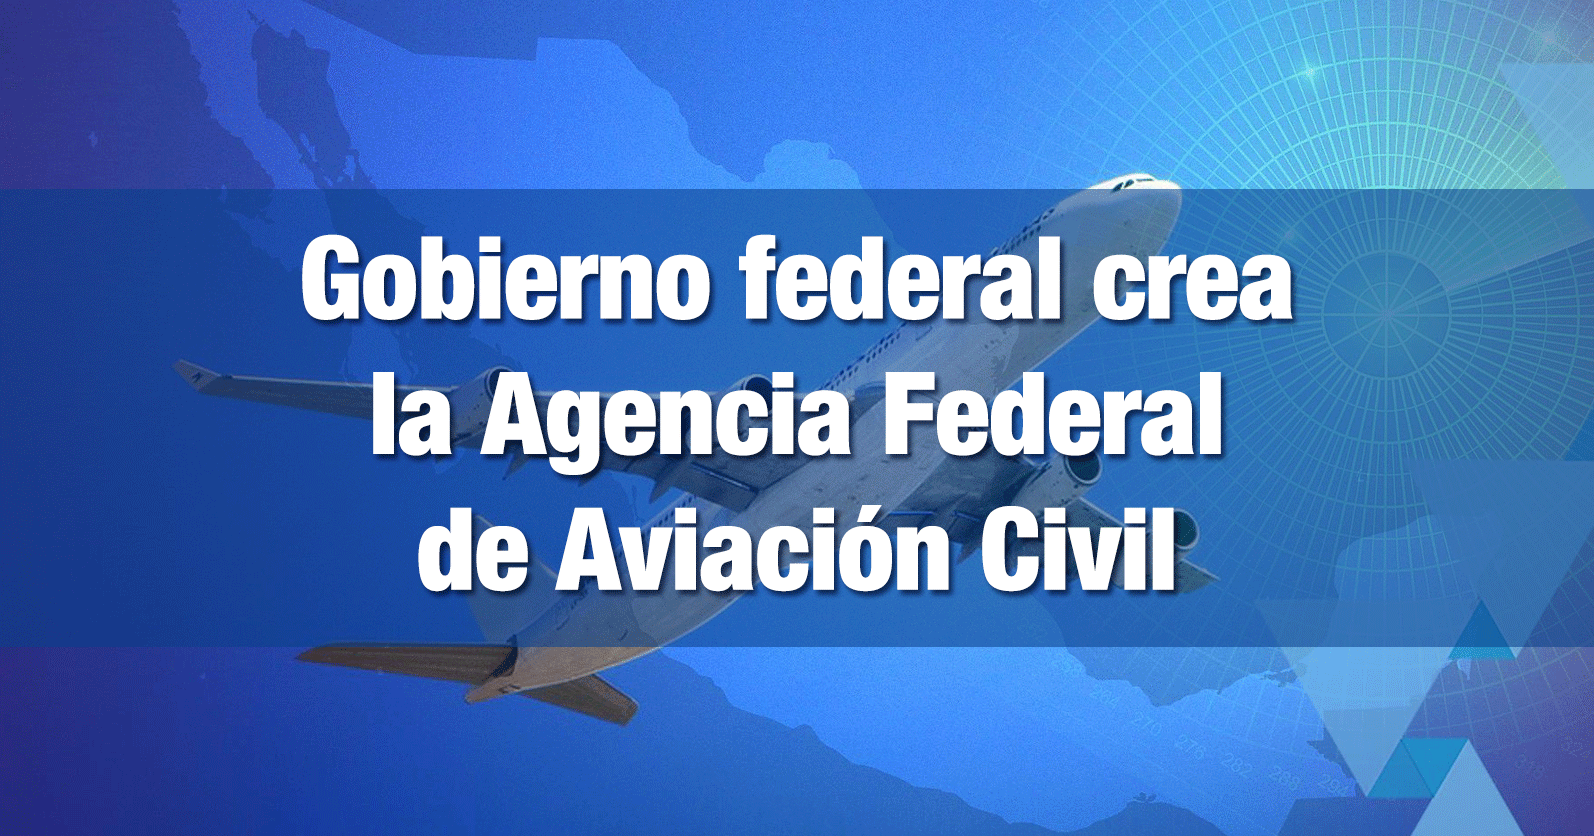 Gobierno federal crea la Agencia Federal de Aviación Civil